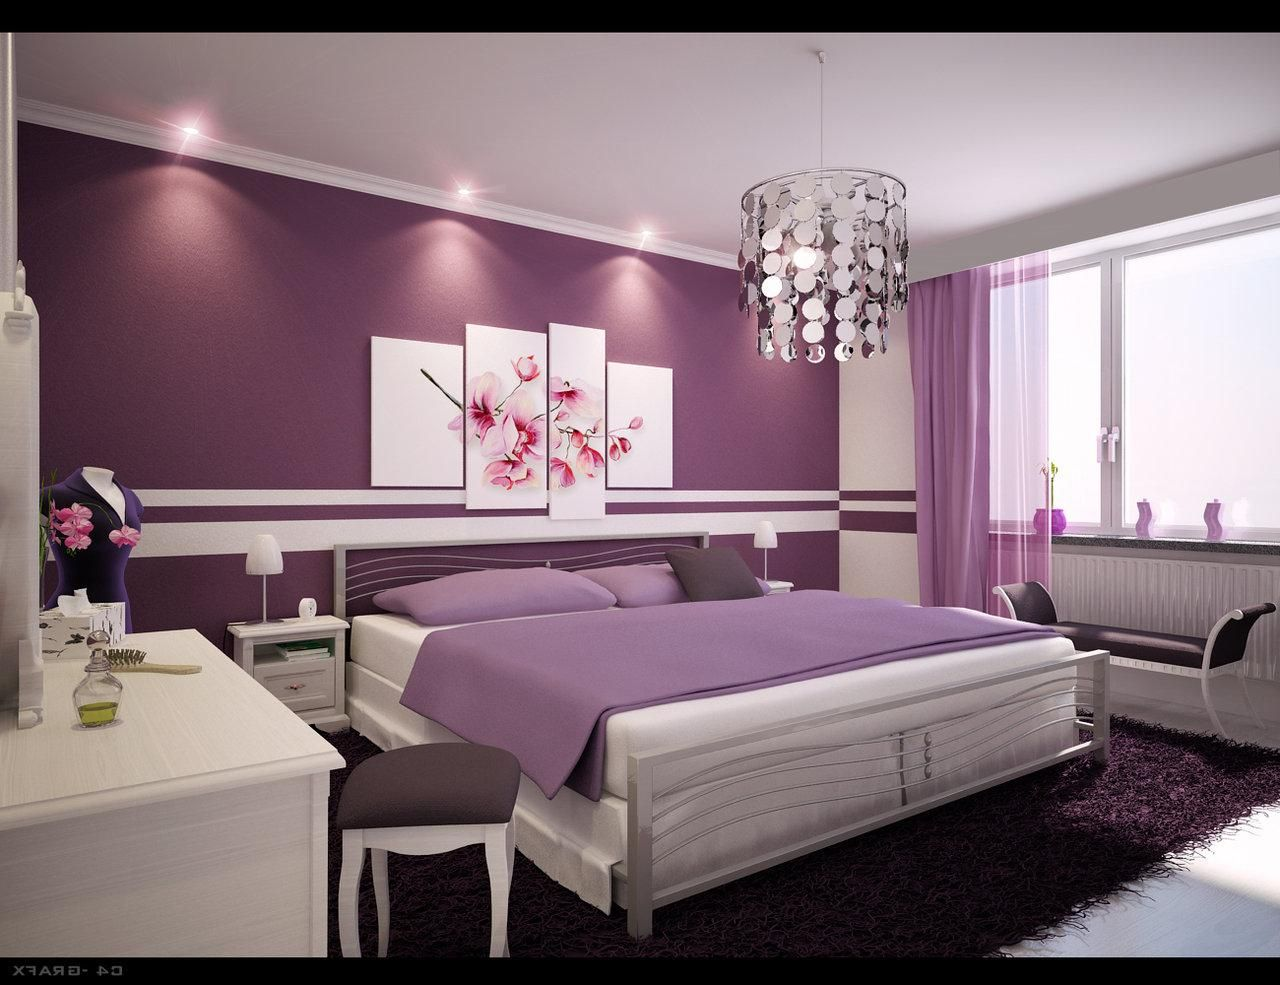 Contemporary bedroom decorating ideas modern vintage home design home decorating ideas - Modern purple bedroom colors ...